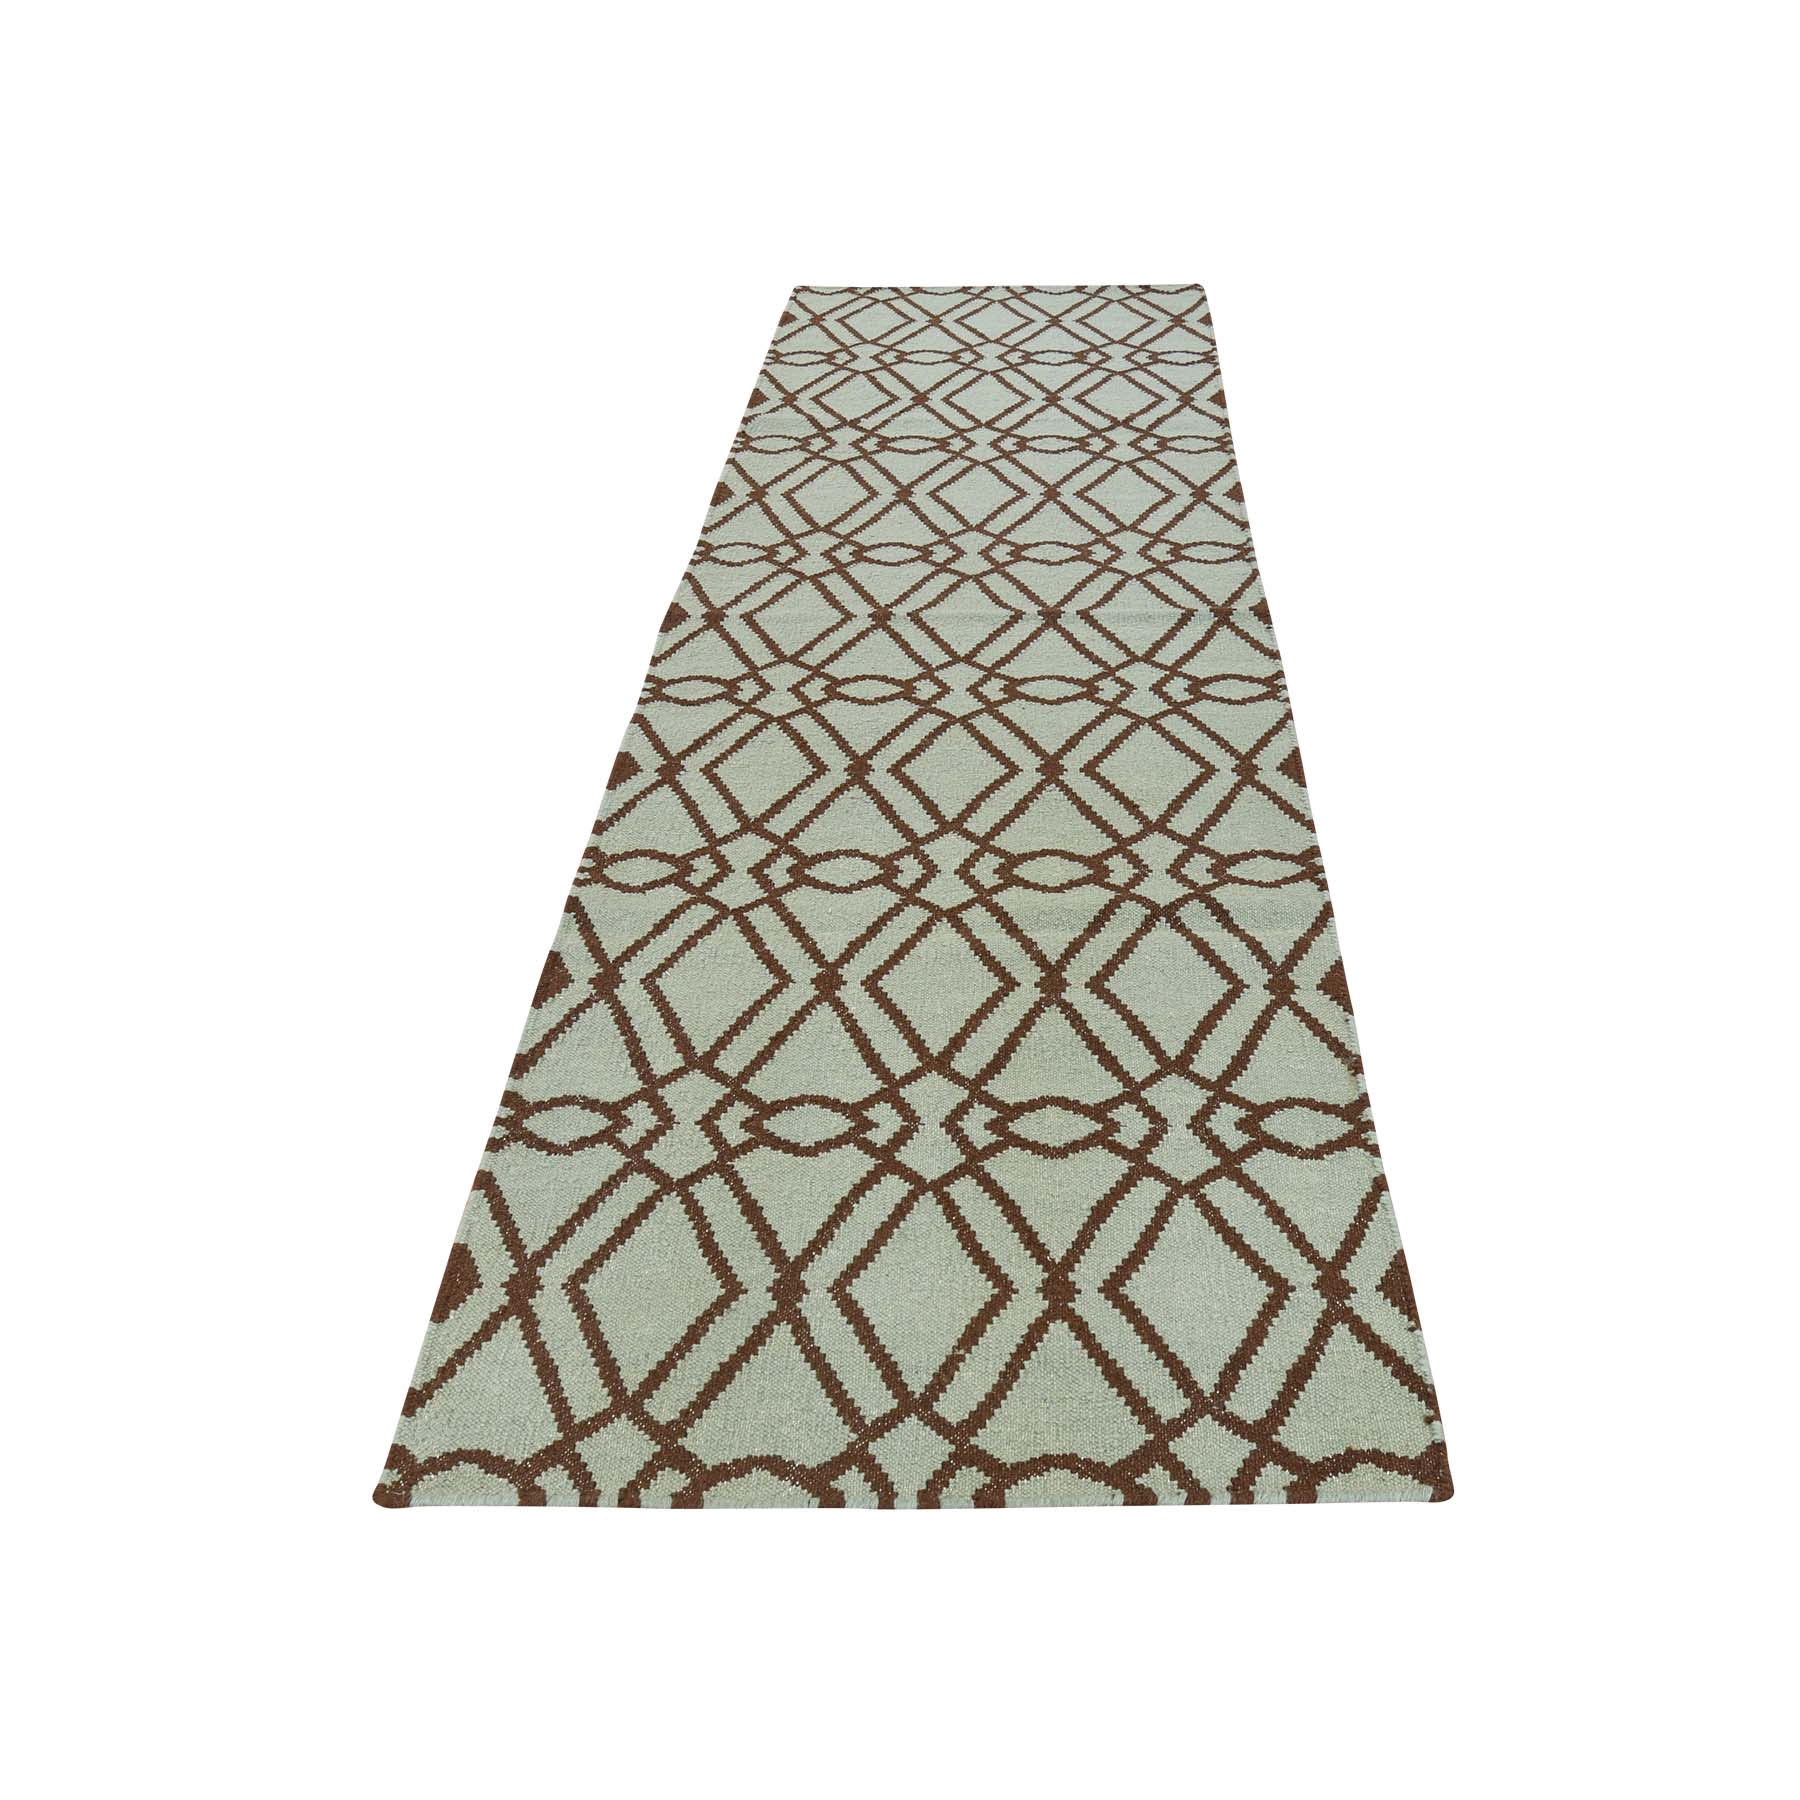 2'9''X6' Flat Weave Durie Kilim Hand Woven Reversible Runner Oriental Rug moac786c